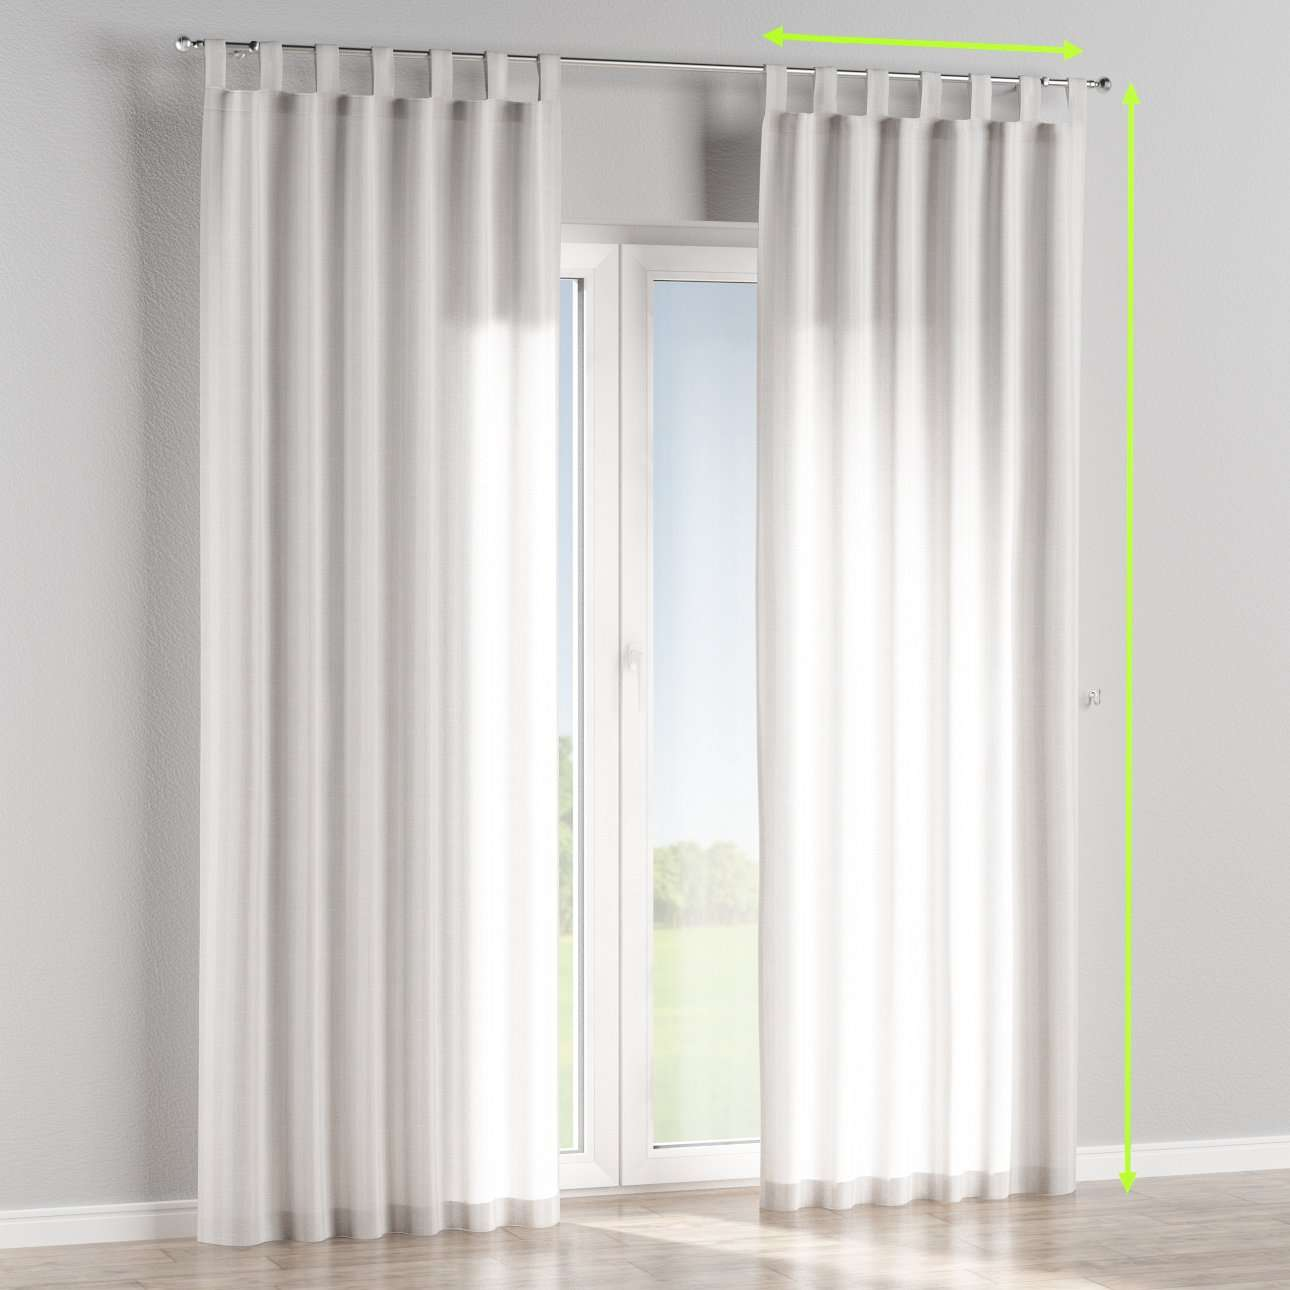 Tab top lined curtains in collection Linen , fabric: 392-03